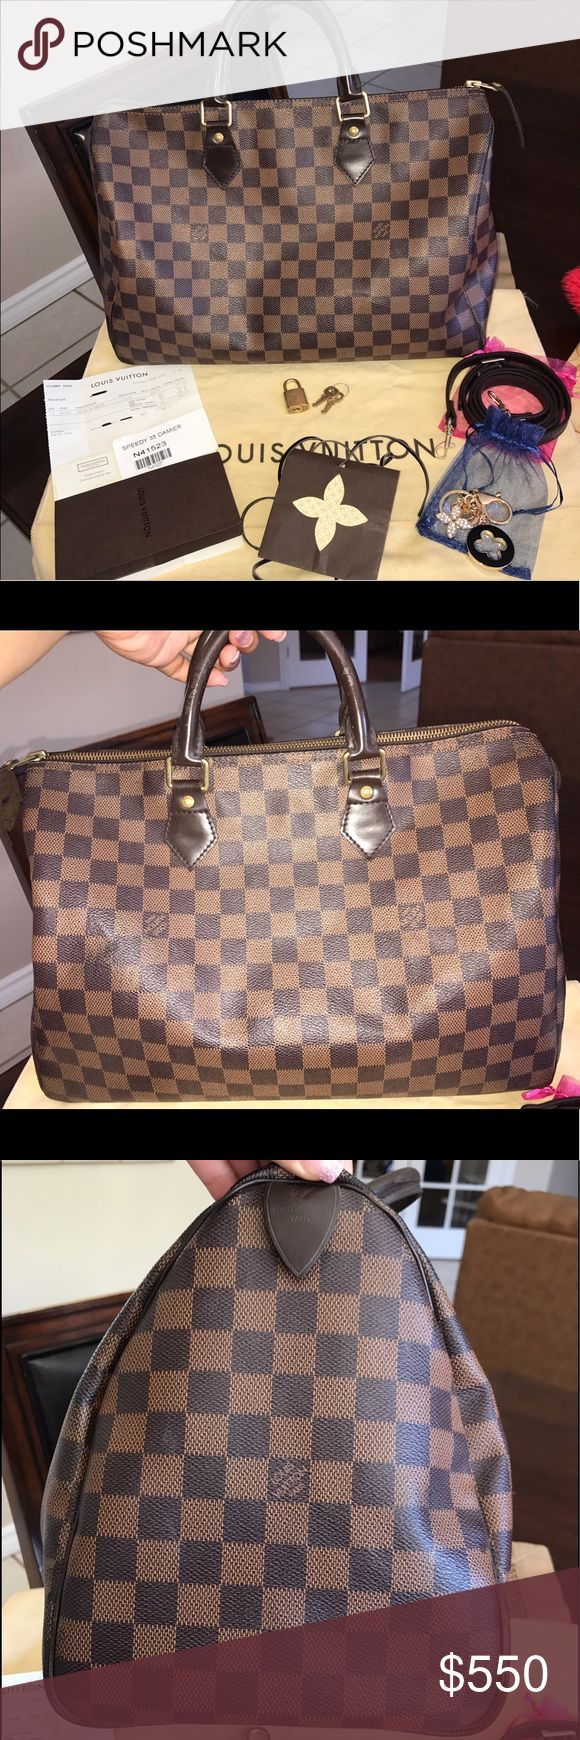 ❤️💯Authentic Speedy 35 Damier Ebene❤️ Preowned Speedy 35 in Damier Ebene😍 Not original owner. BAG INCLUDES: LV dust bag, lock & keys, receipt & tags. Fluffy base shaper, LV inspired bag charm, & brown shoulder strap. EXTERIOR: Signs of wear: handles, zipper pull tag, leather piping; (corner scuffs); checkered leather: some wear marks/scuffs. INTERIOR: Used condition, red lining faded, pocket & leather opening trim signs of wear.❣️Price is firm, due to Posh fees &would like to get back what…